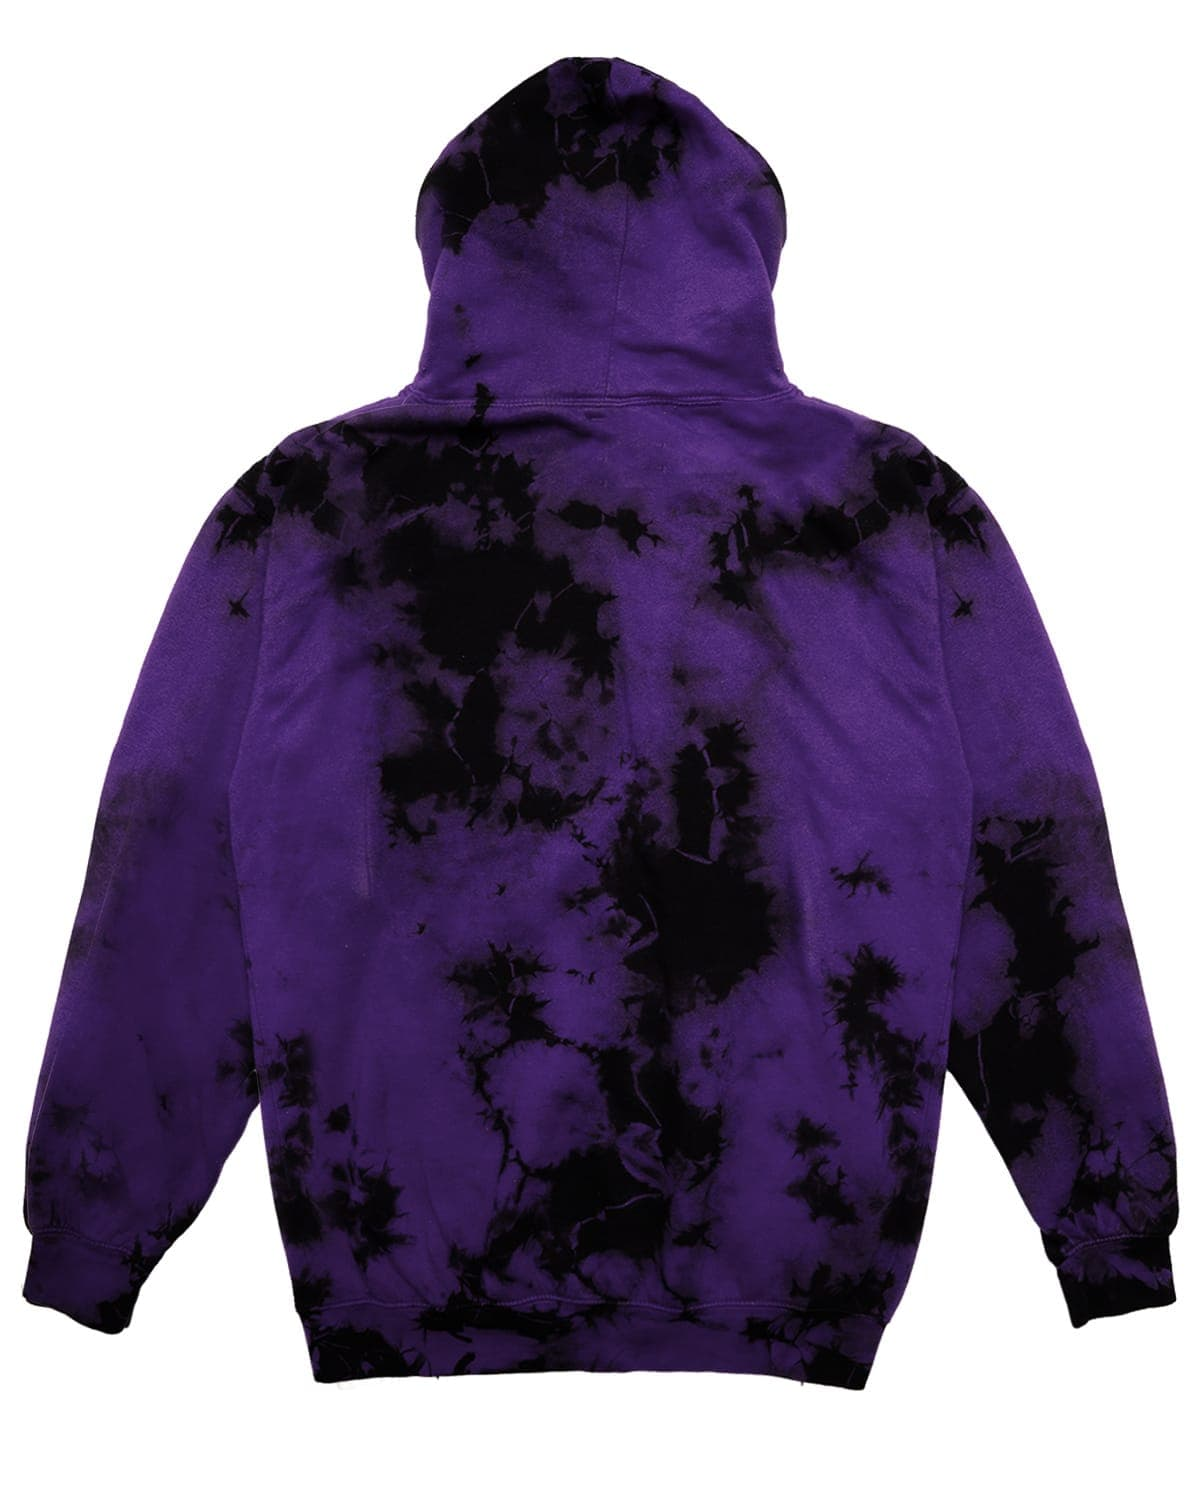 Official Lost Lands Tie Dye Pull Over Hoodie - Purple